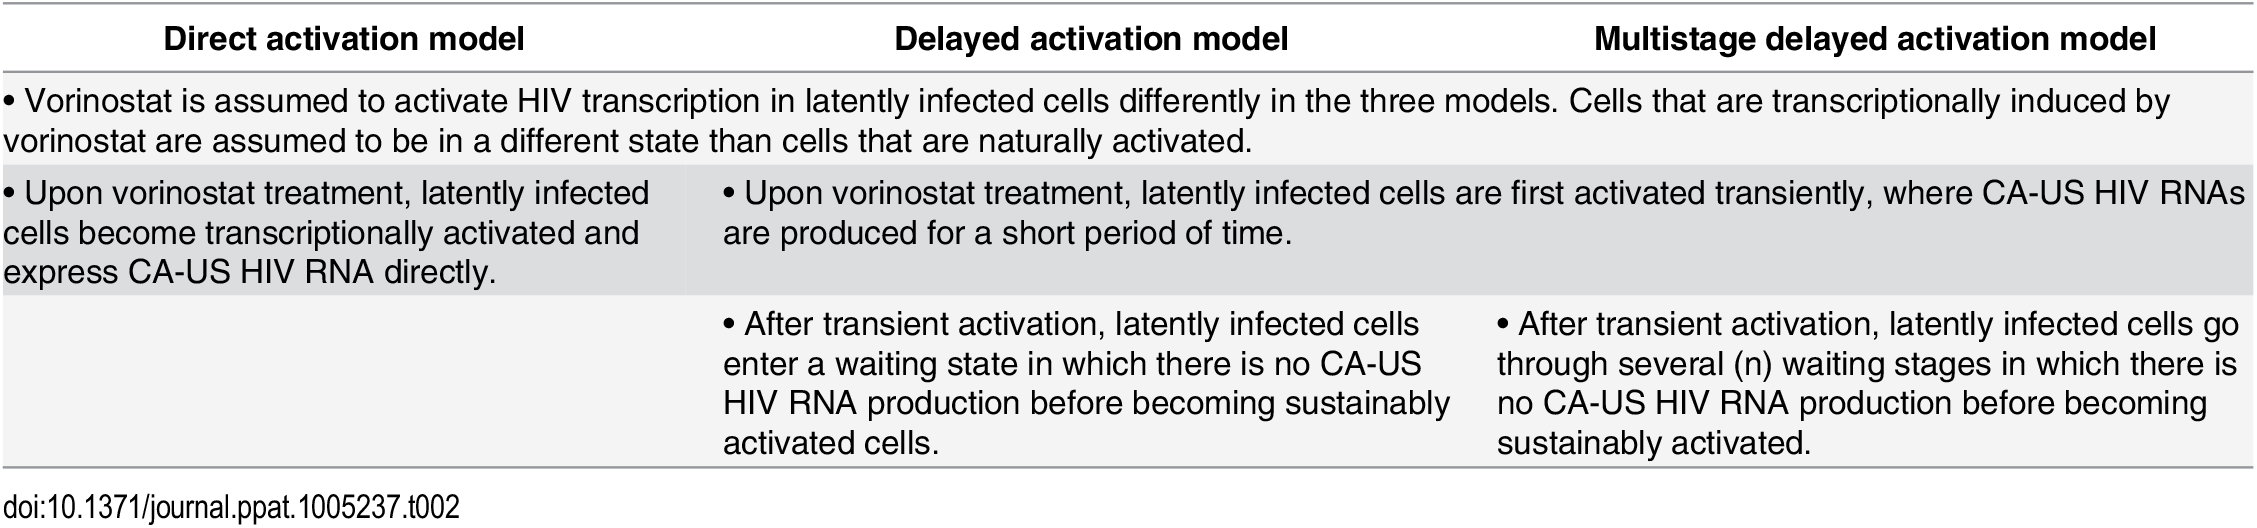 Comparison of assumptions made in the direct activation, the delayed activation, and the multistage delayed activation model.